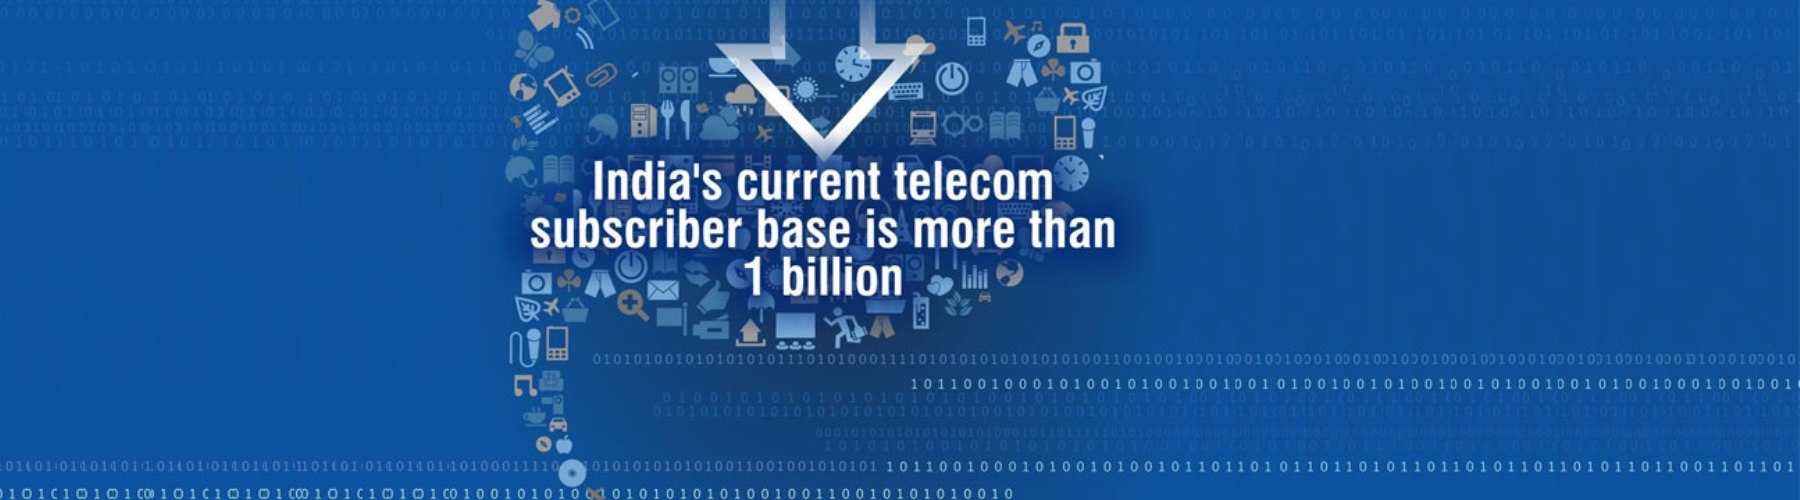 India's Current Telecom Subscriber Base is more than 1 Billion